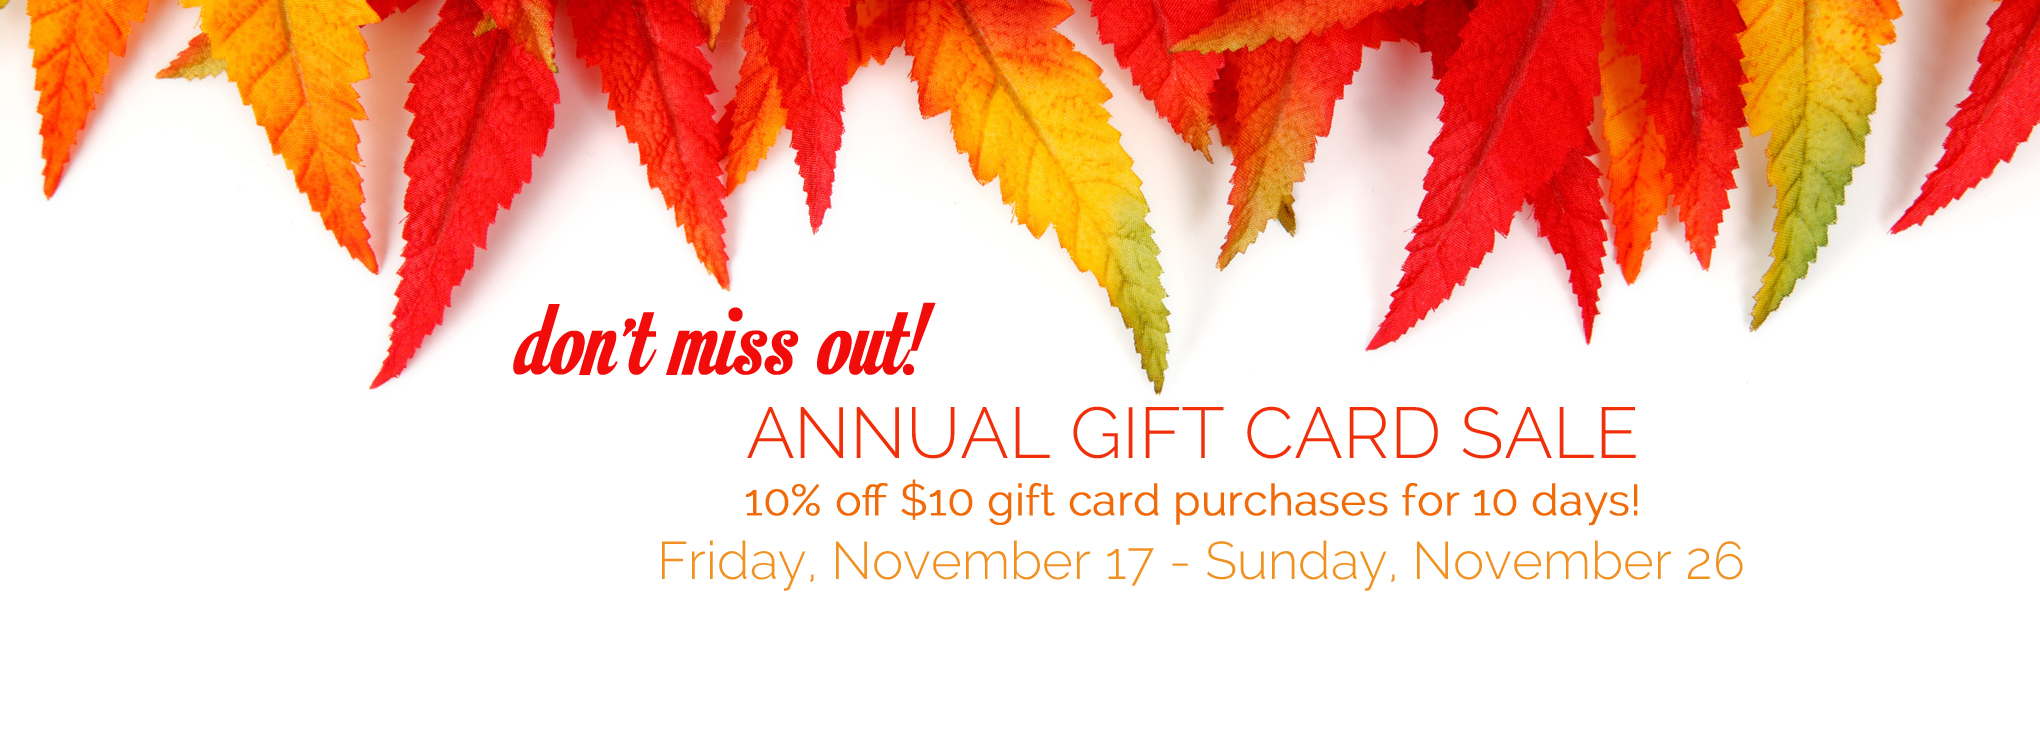 Slider image for annual gift card sale